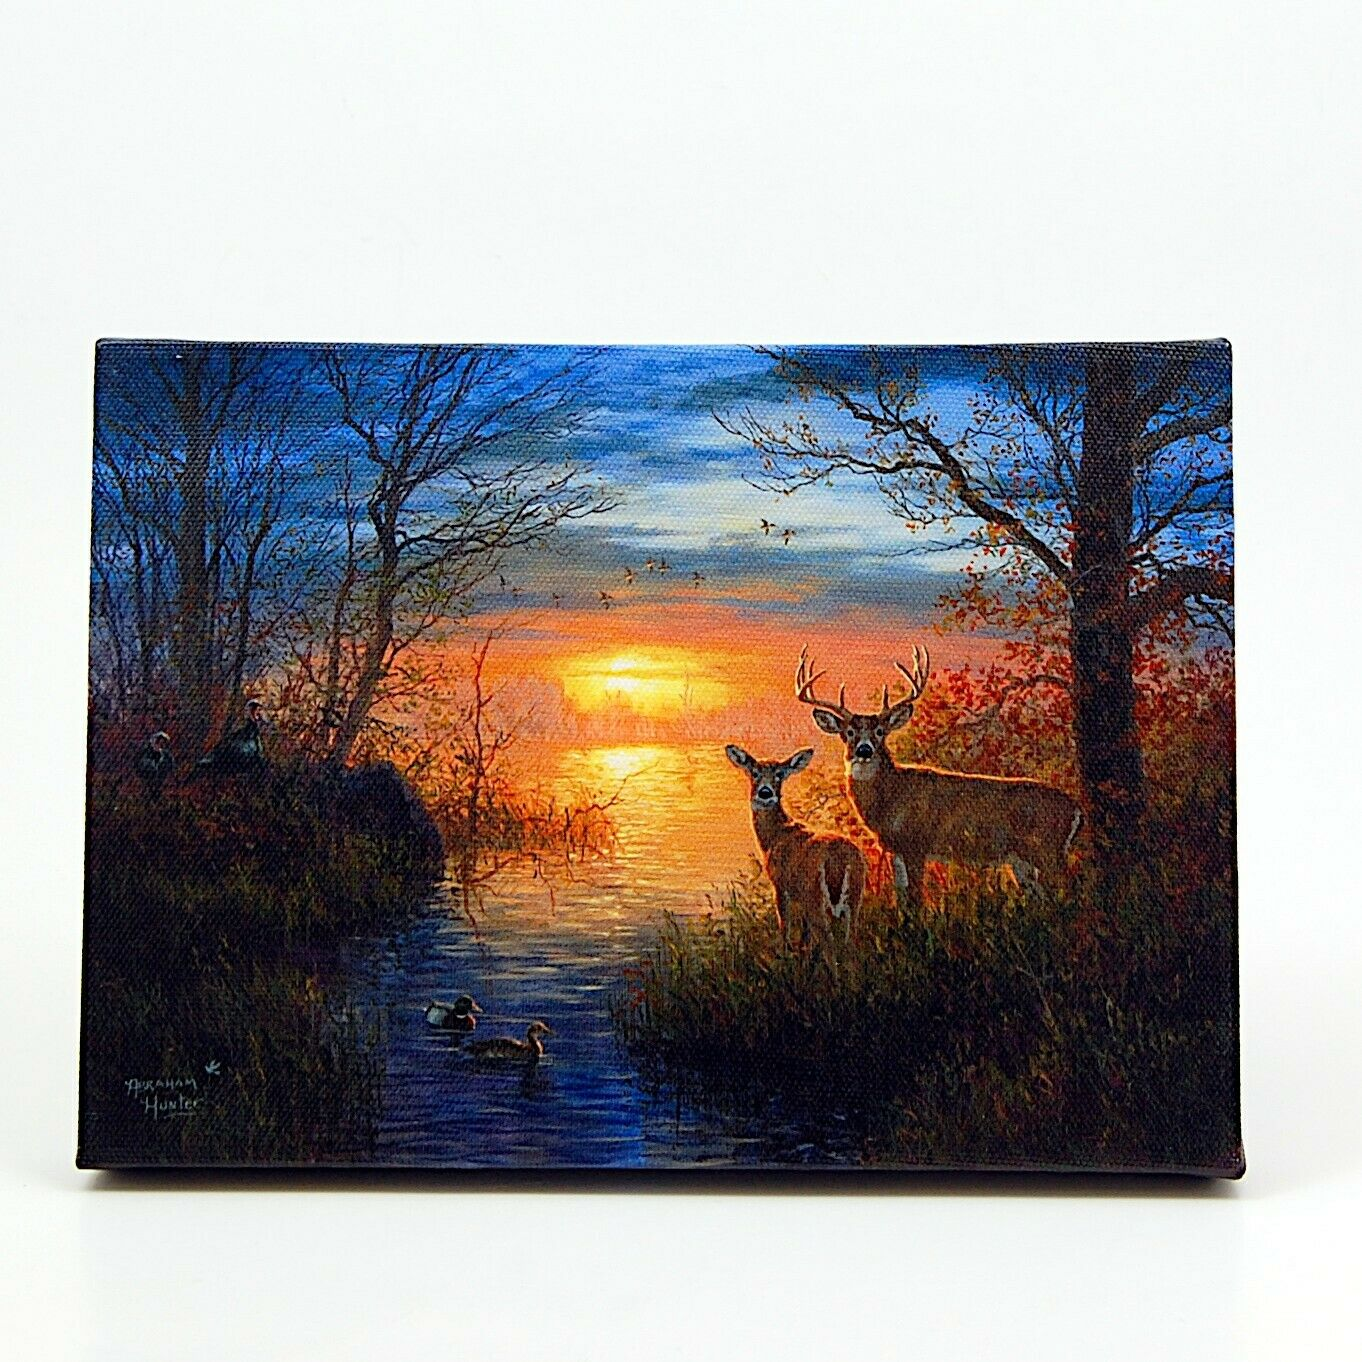 Deer by Water at Dawn LED Light Up Lighted Canvas Wall or Tabletop Picture Art